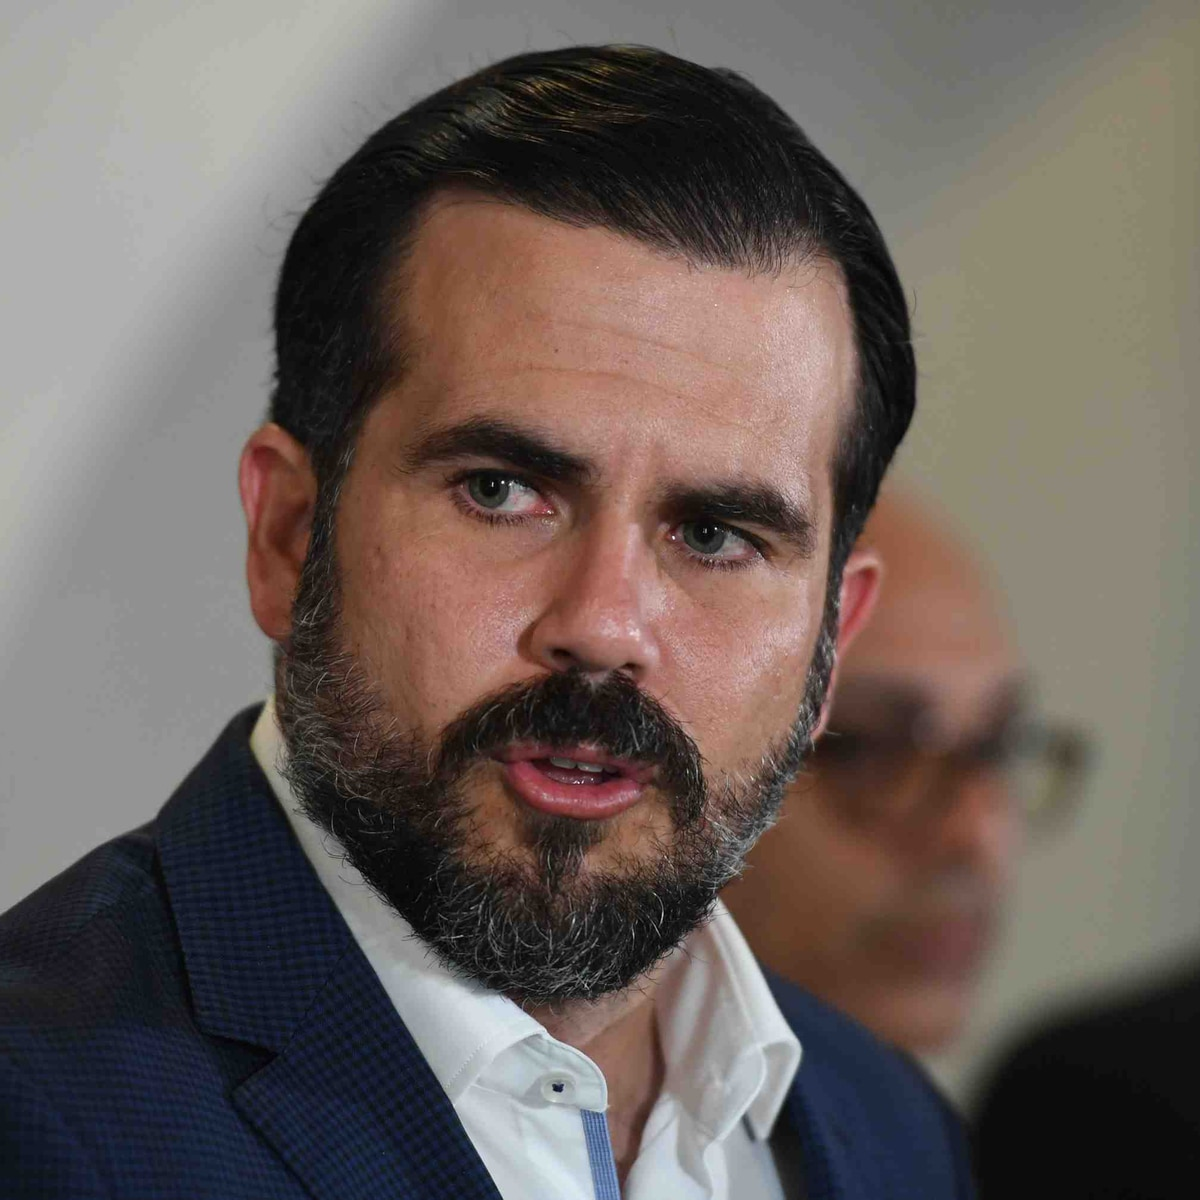 Leaked Chat Between Puerto Rico S Governor And His Executive Team Shakes The Island El Nuevo Dia